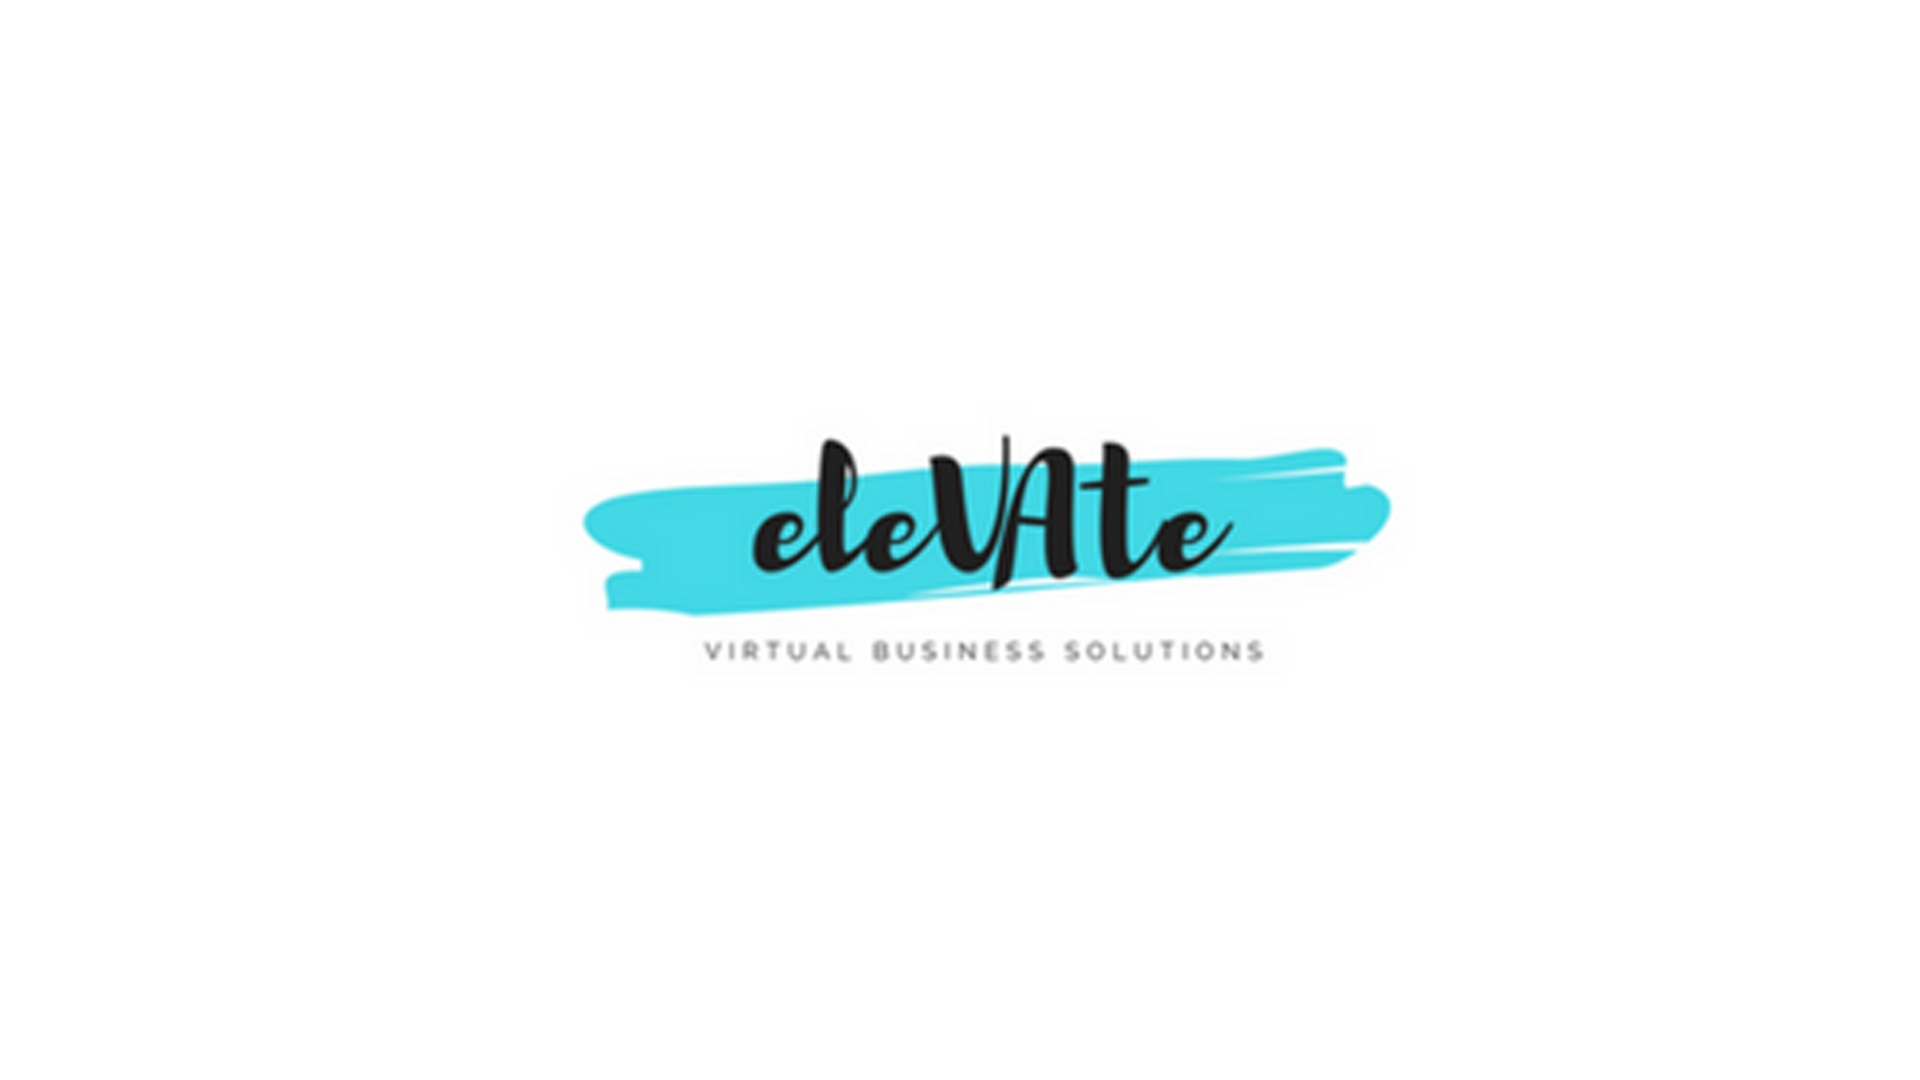 ELEVATE VIRTUAL BUSINESS SOLUTIONS    Woodbridge, NJ   Virtual assistant, social media, marketing, event planning, special projects   Read more...